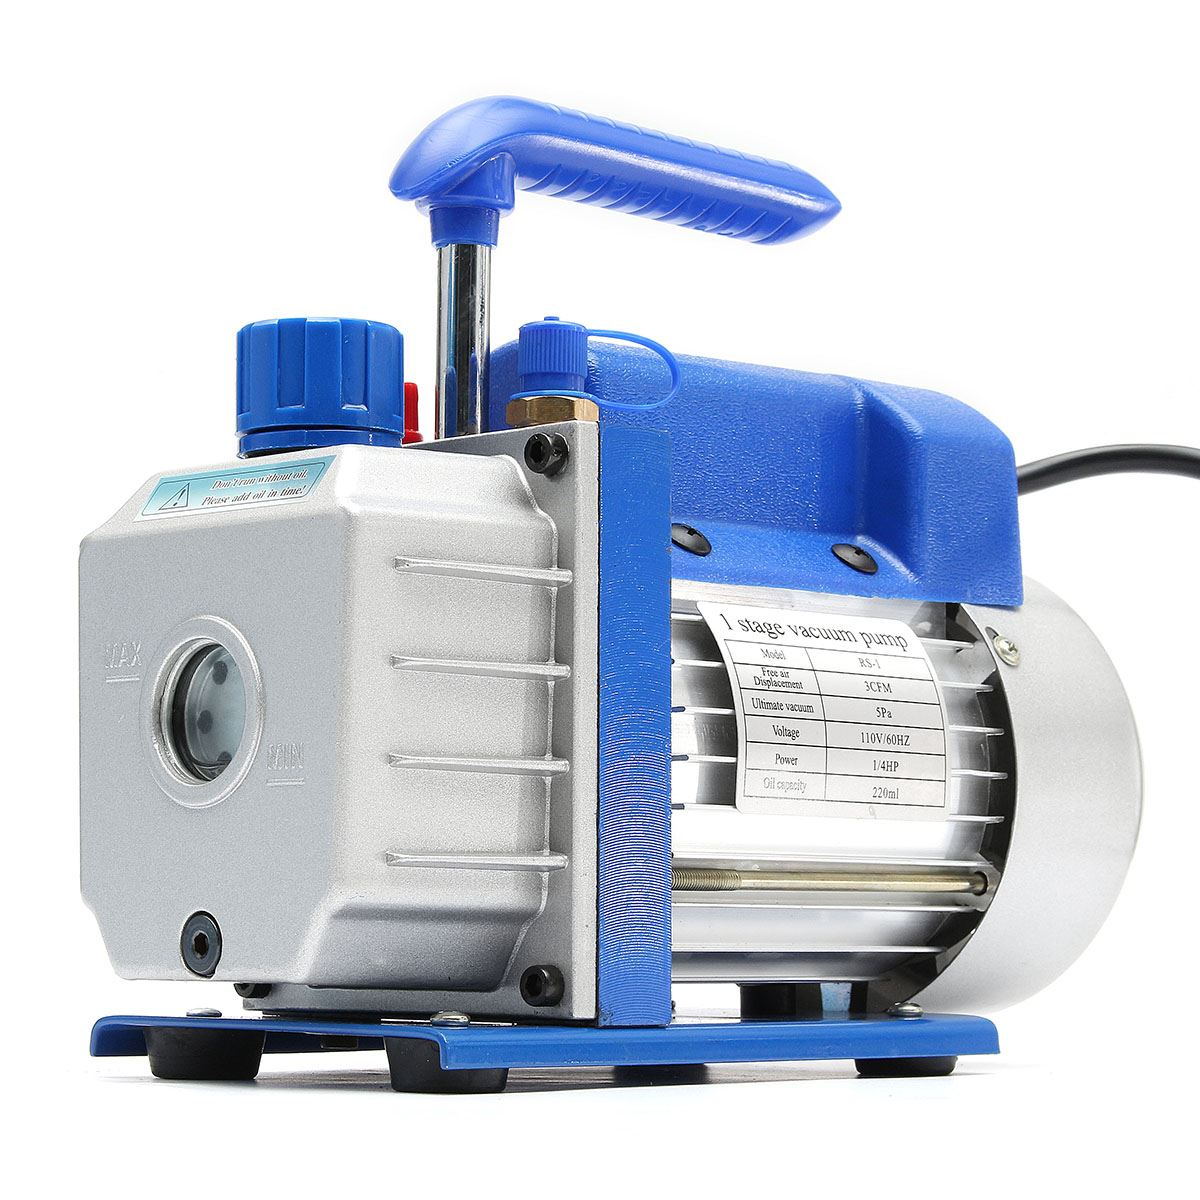 200ml 60HZ 3CFM 5Pa Single Stage Vacuum Pump Rotary Vane Low Pressure 1/4HP Air Conditioning Tool System Refrigeration Tools